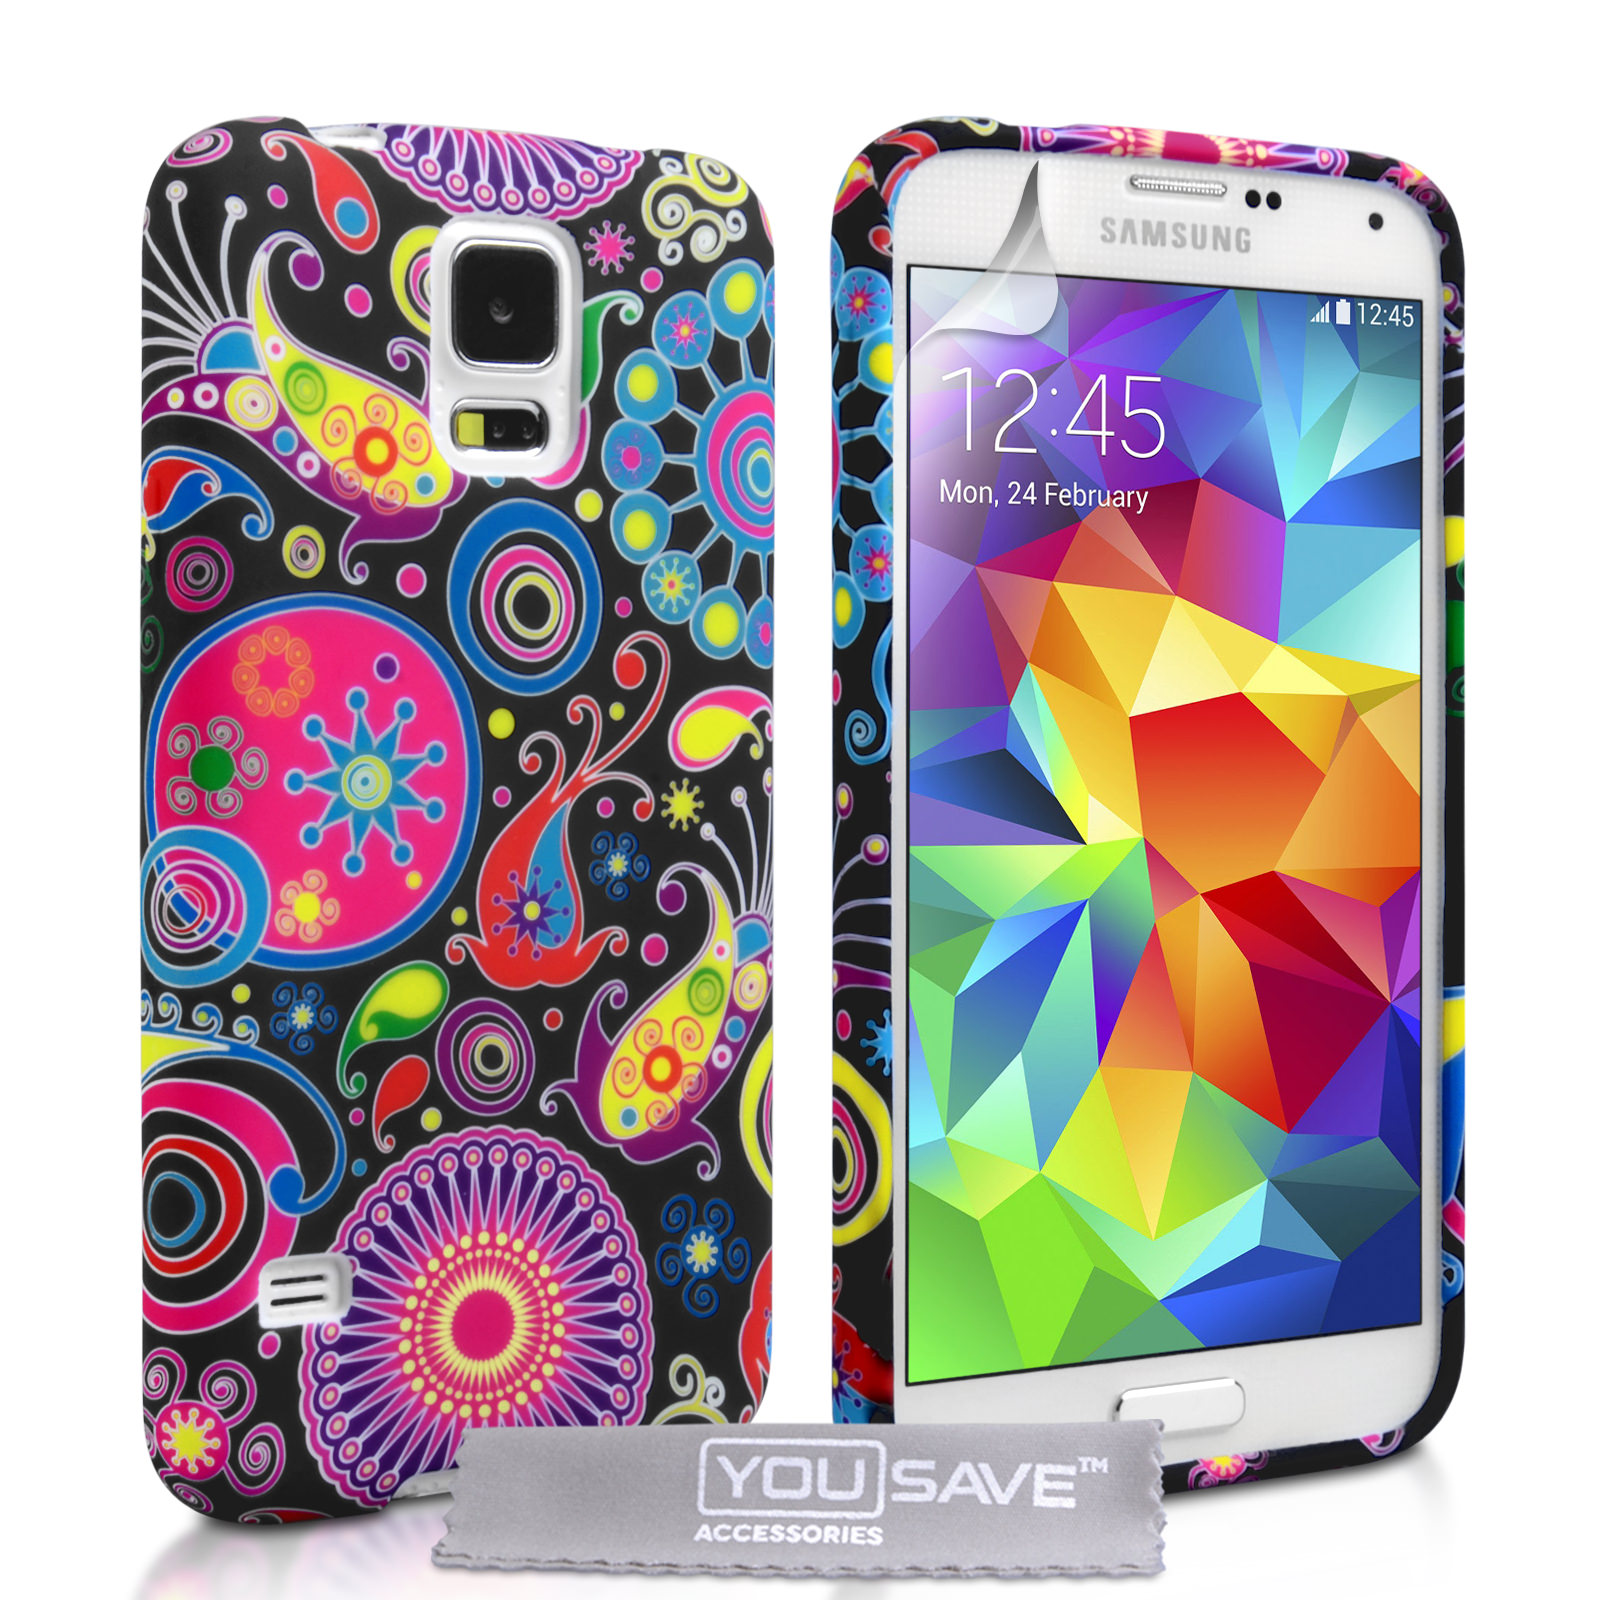 YouSave Accessories Samsung Galaxy S5 Jellyfish Silicone Gel Case